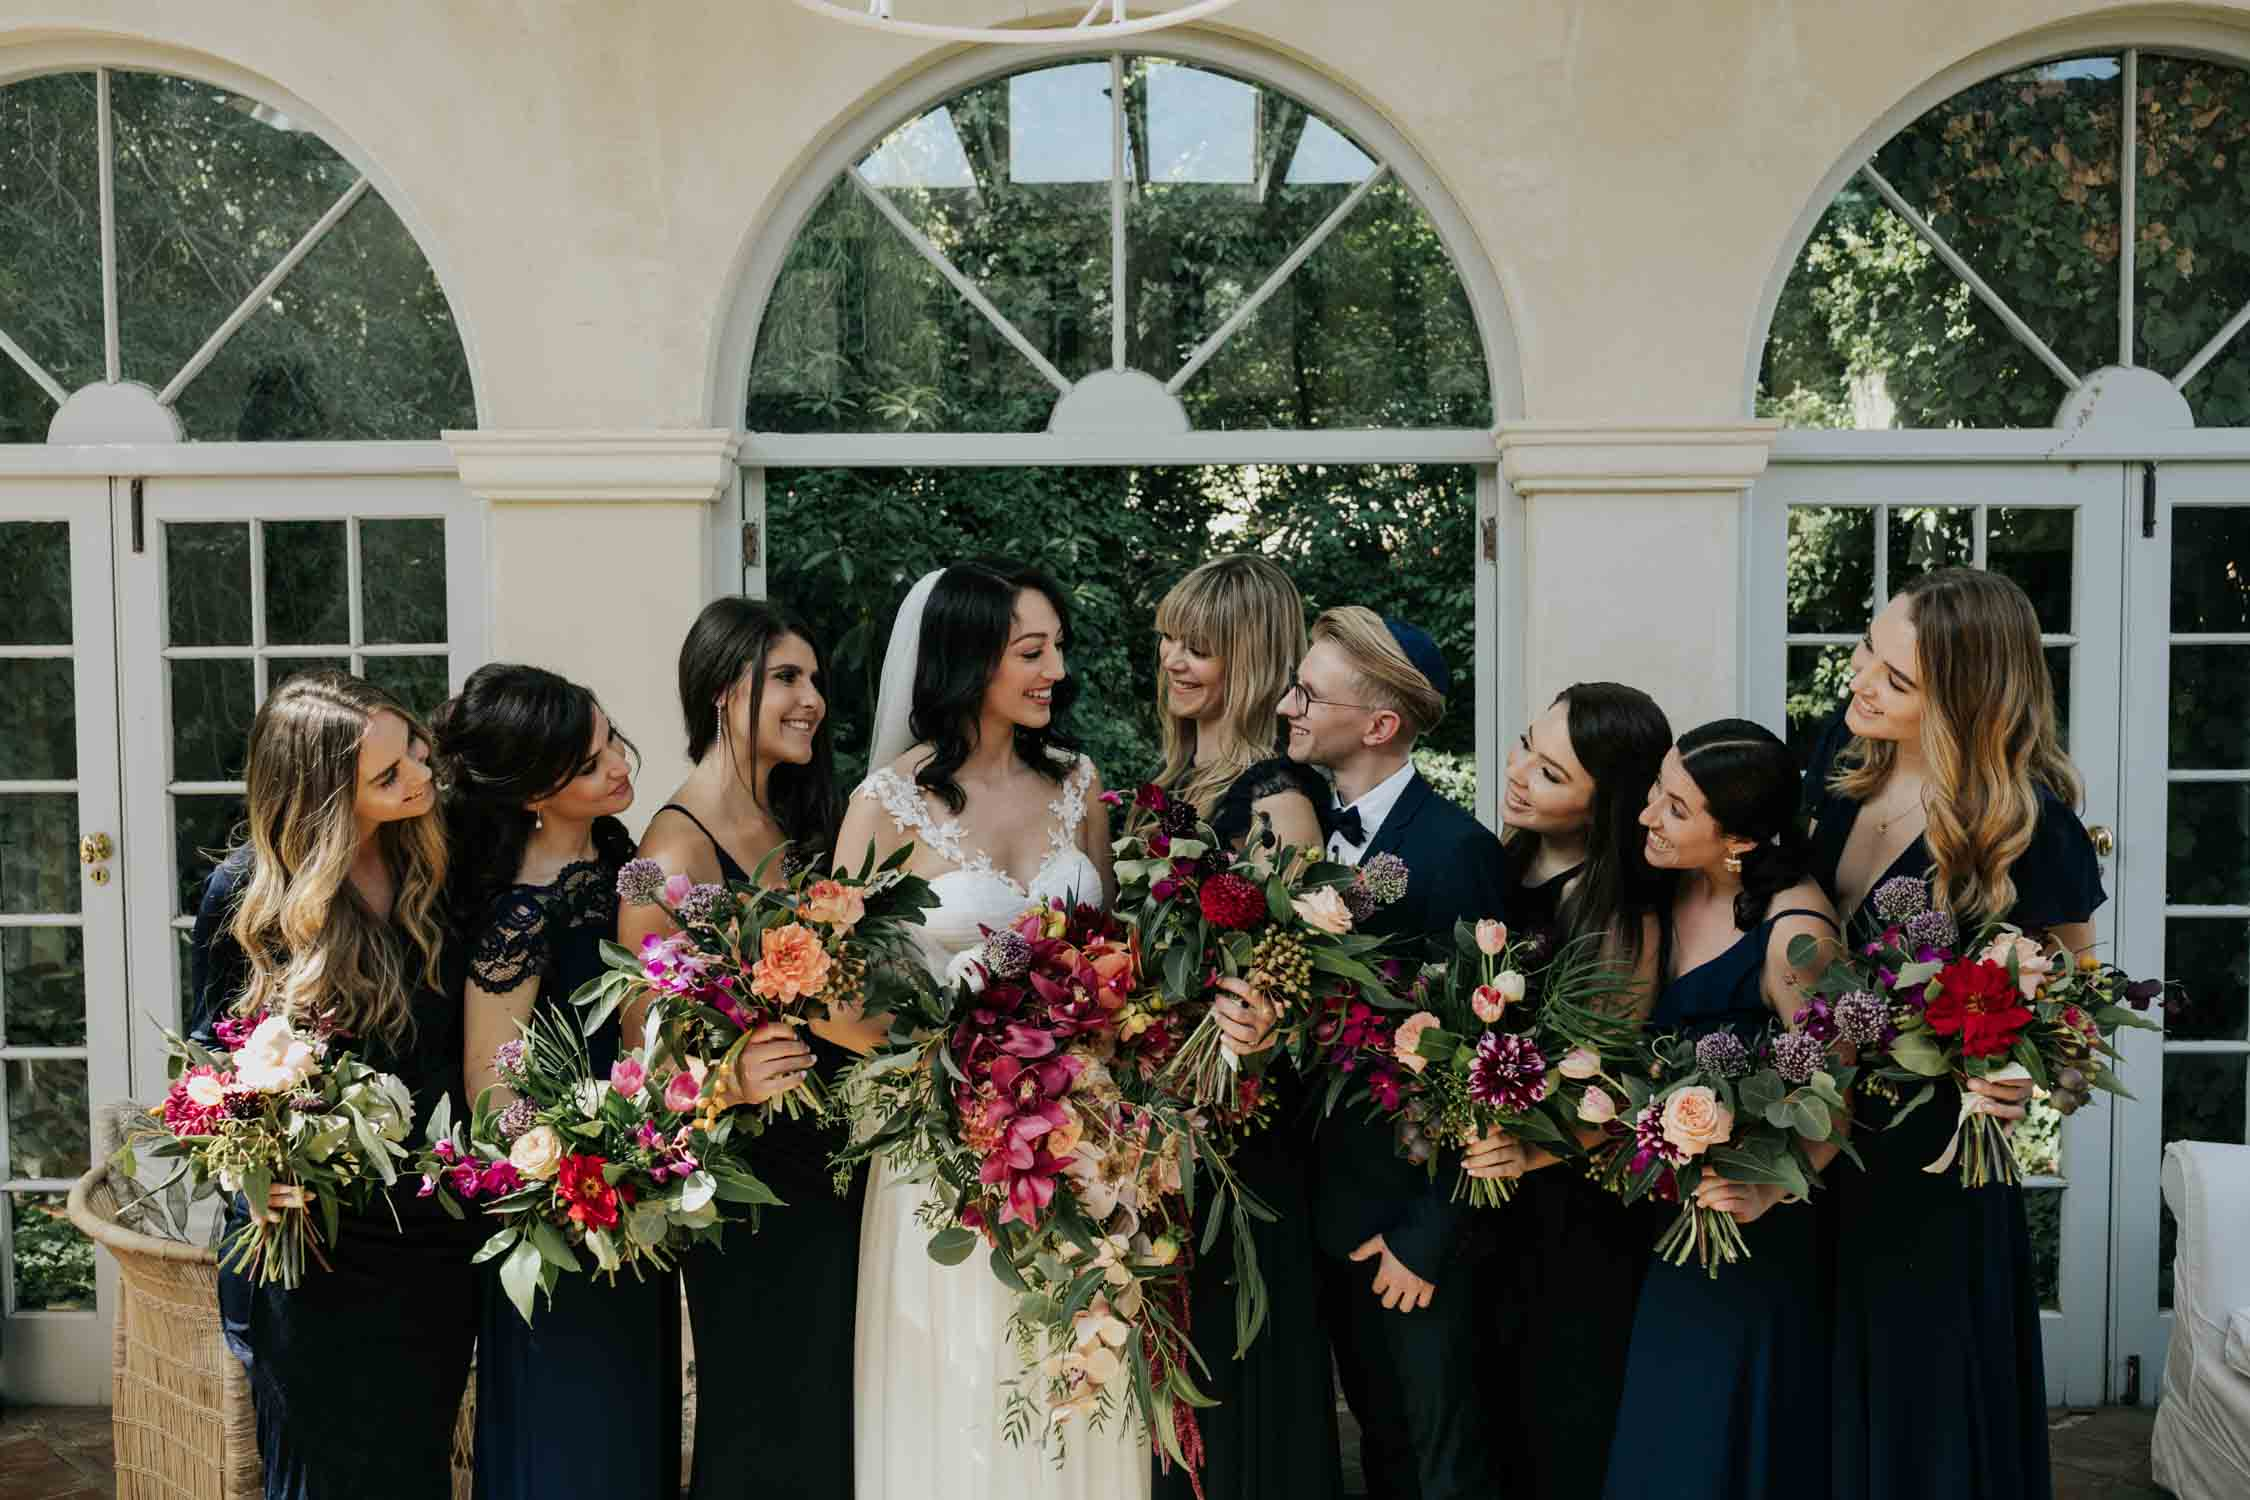 Candid and beautiful bridal party wedding photo